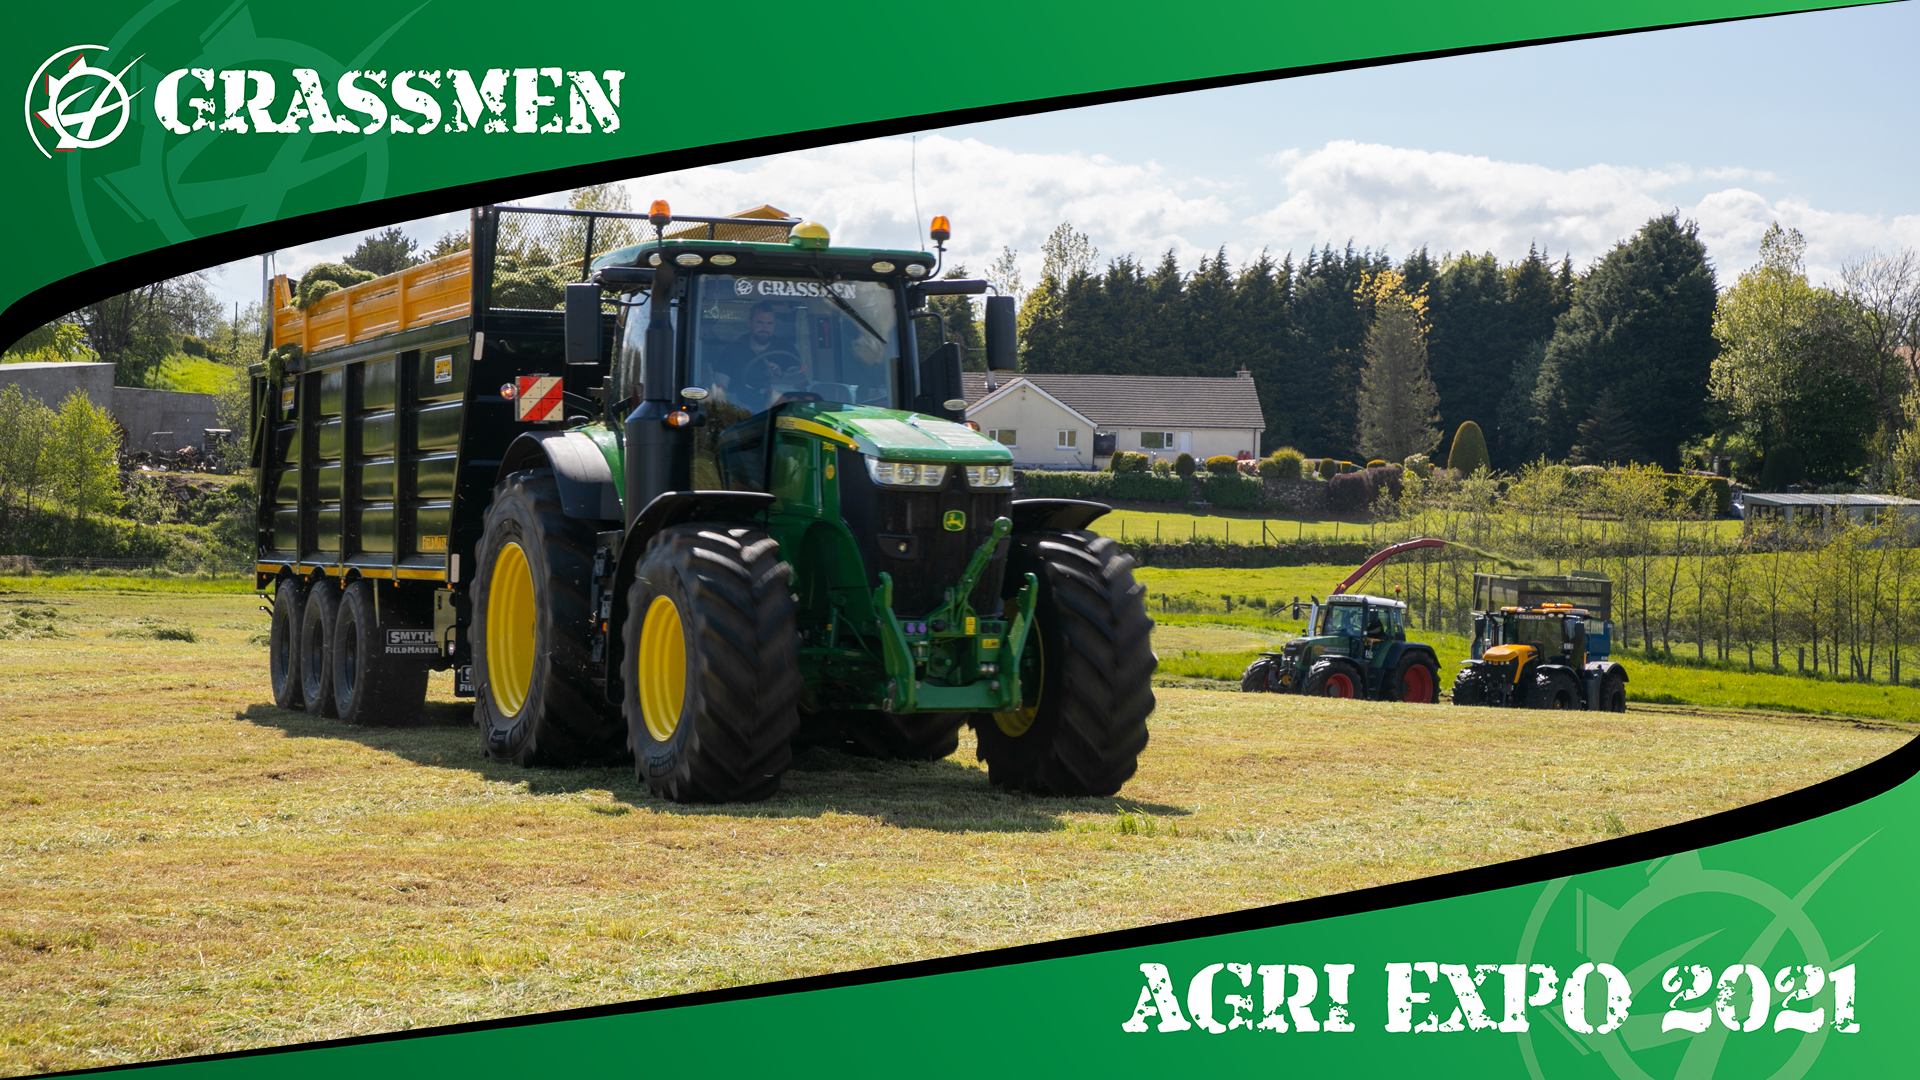 SILAGE AT THE BARN! - GRASSMEN AGRI EXPO DAY 4